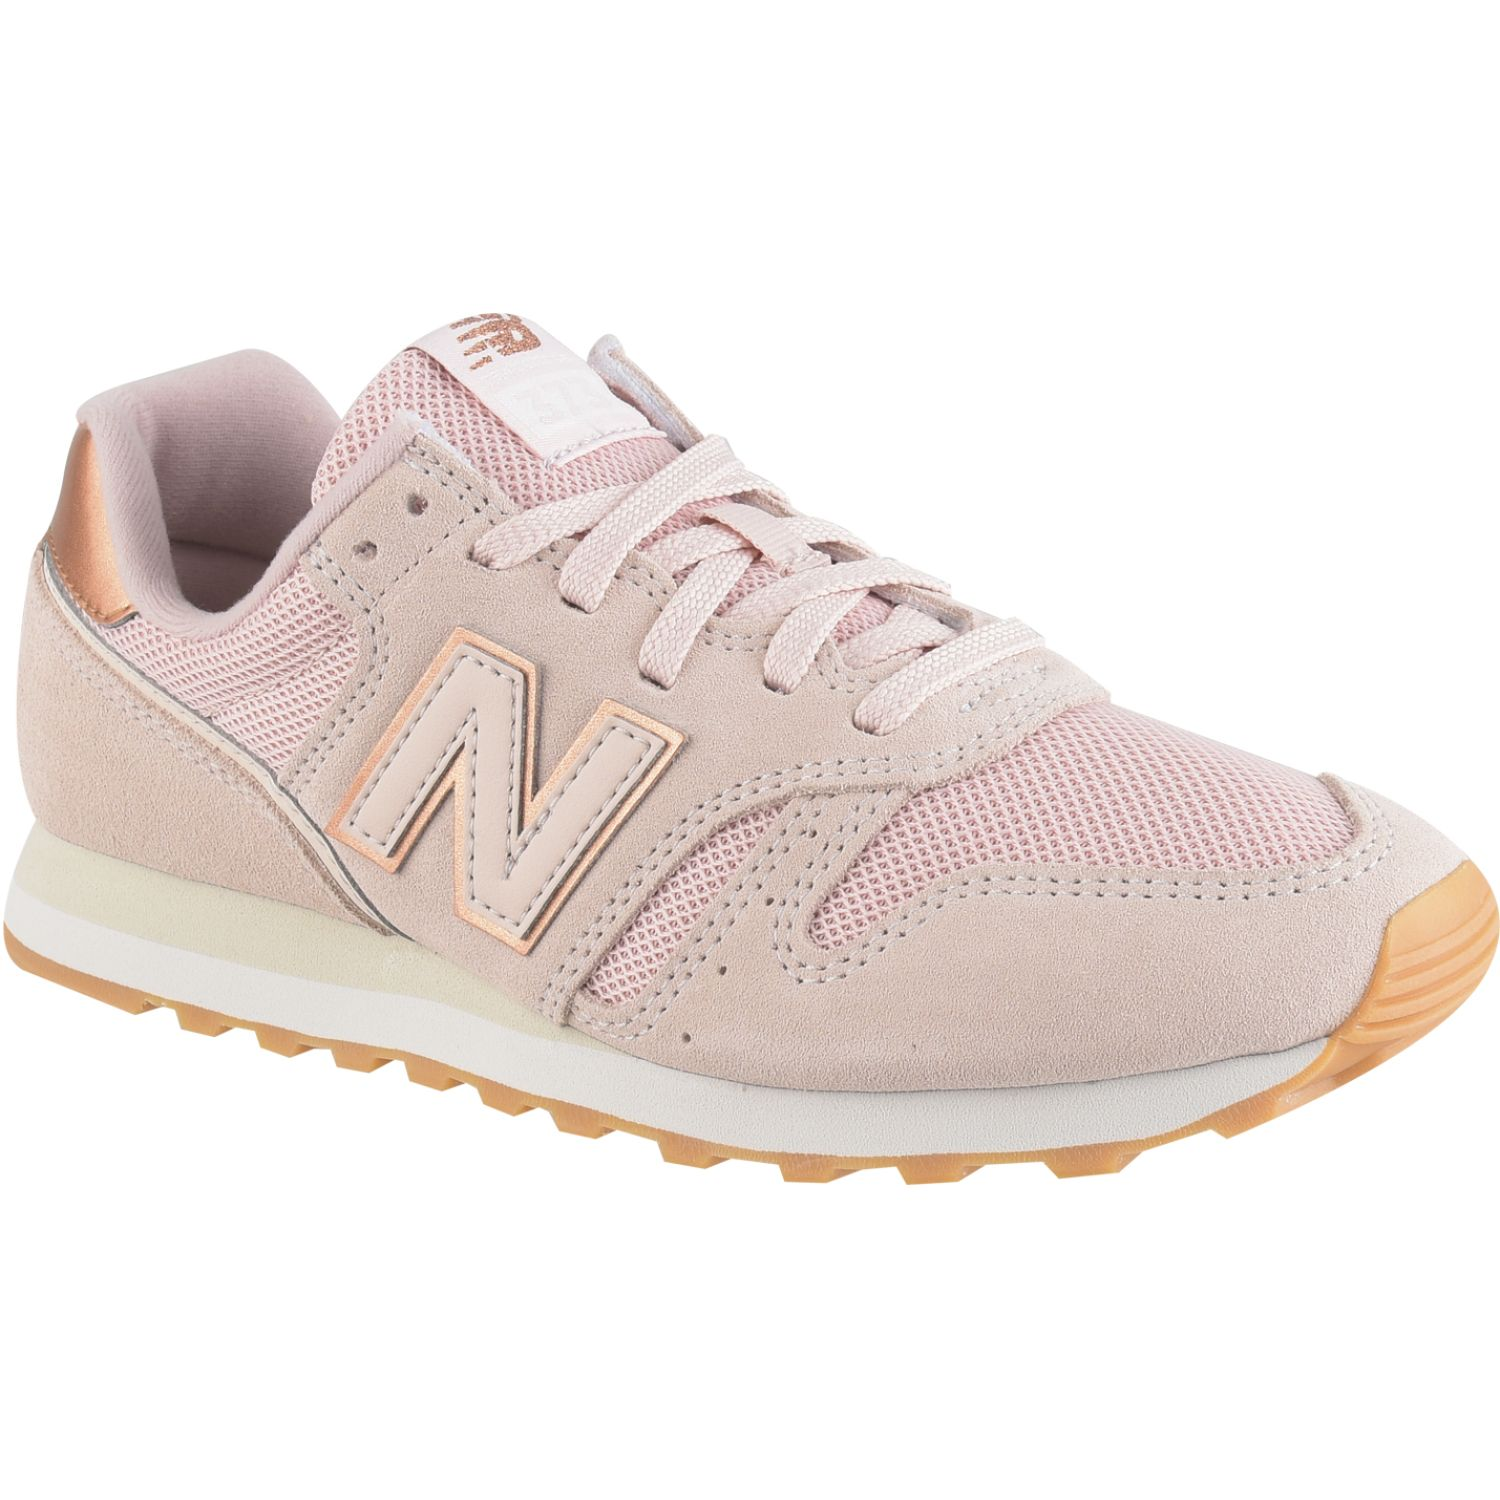 New Balance 373 ROSADO / DORADO Walking